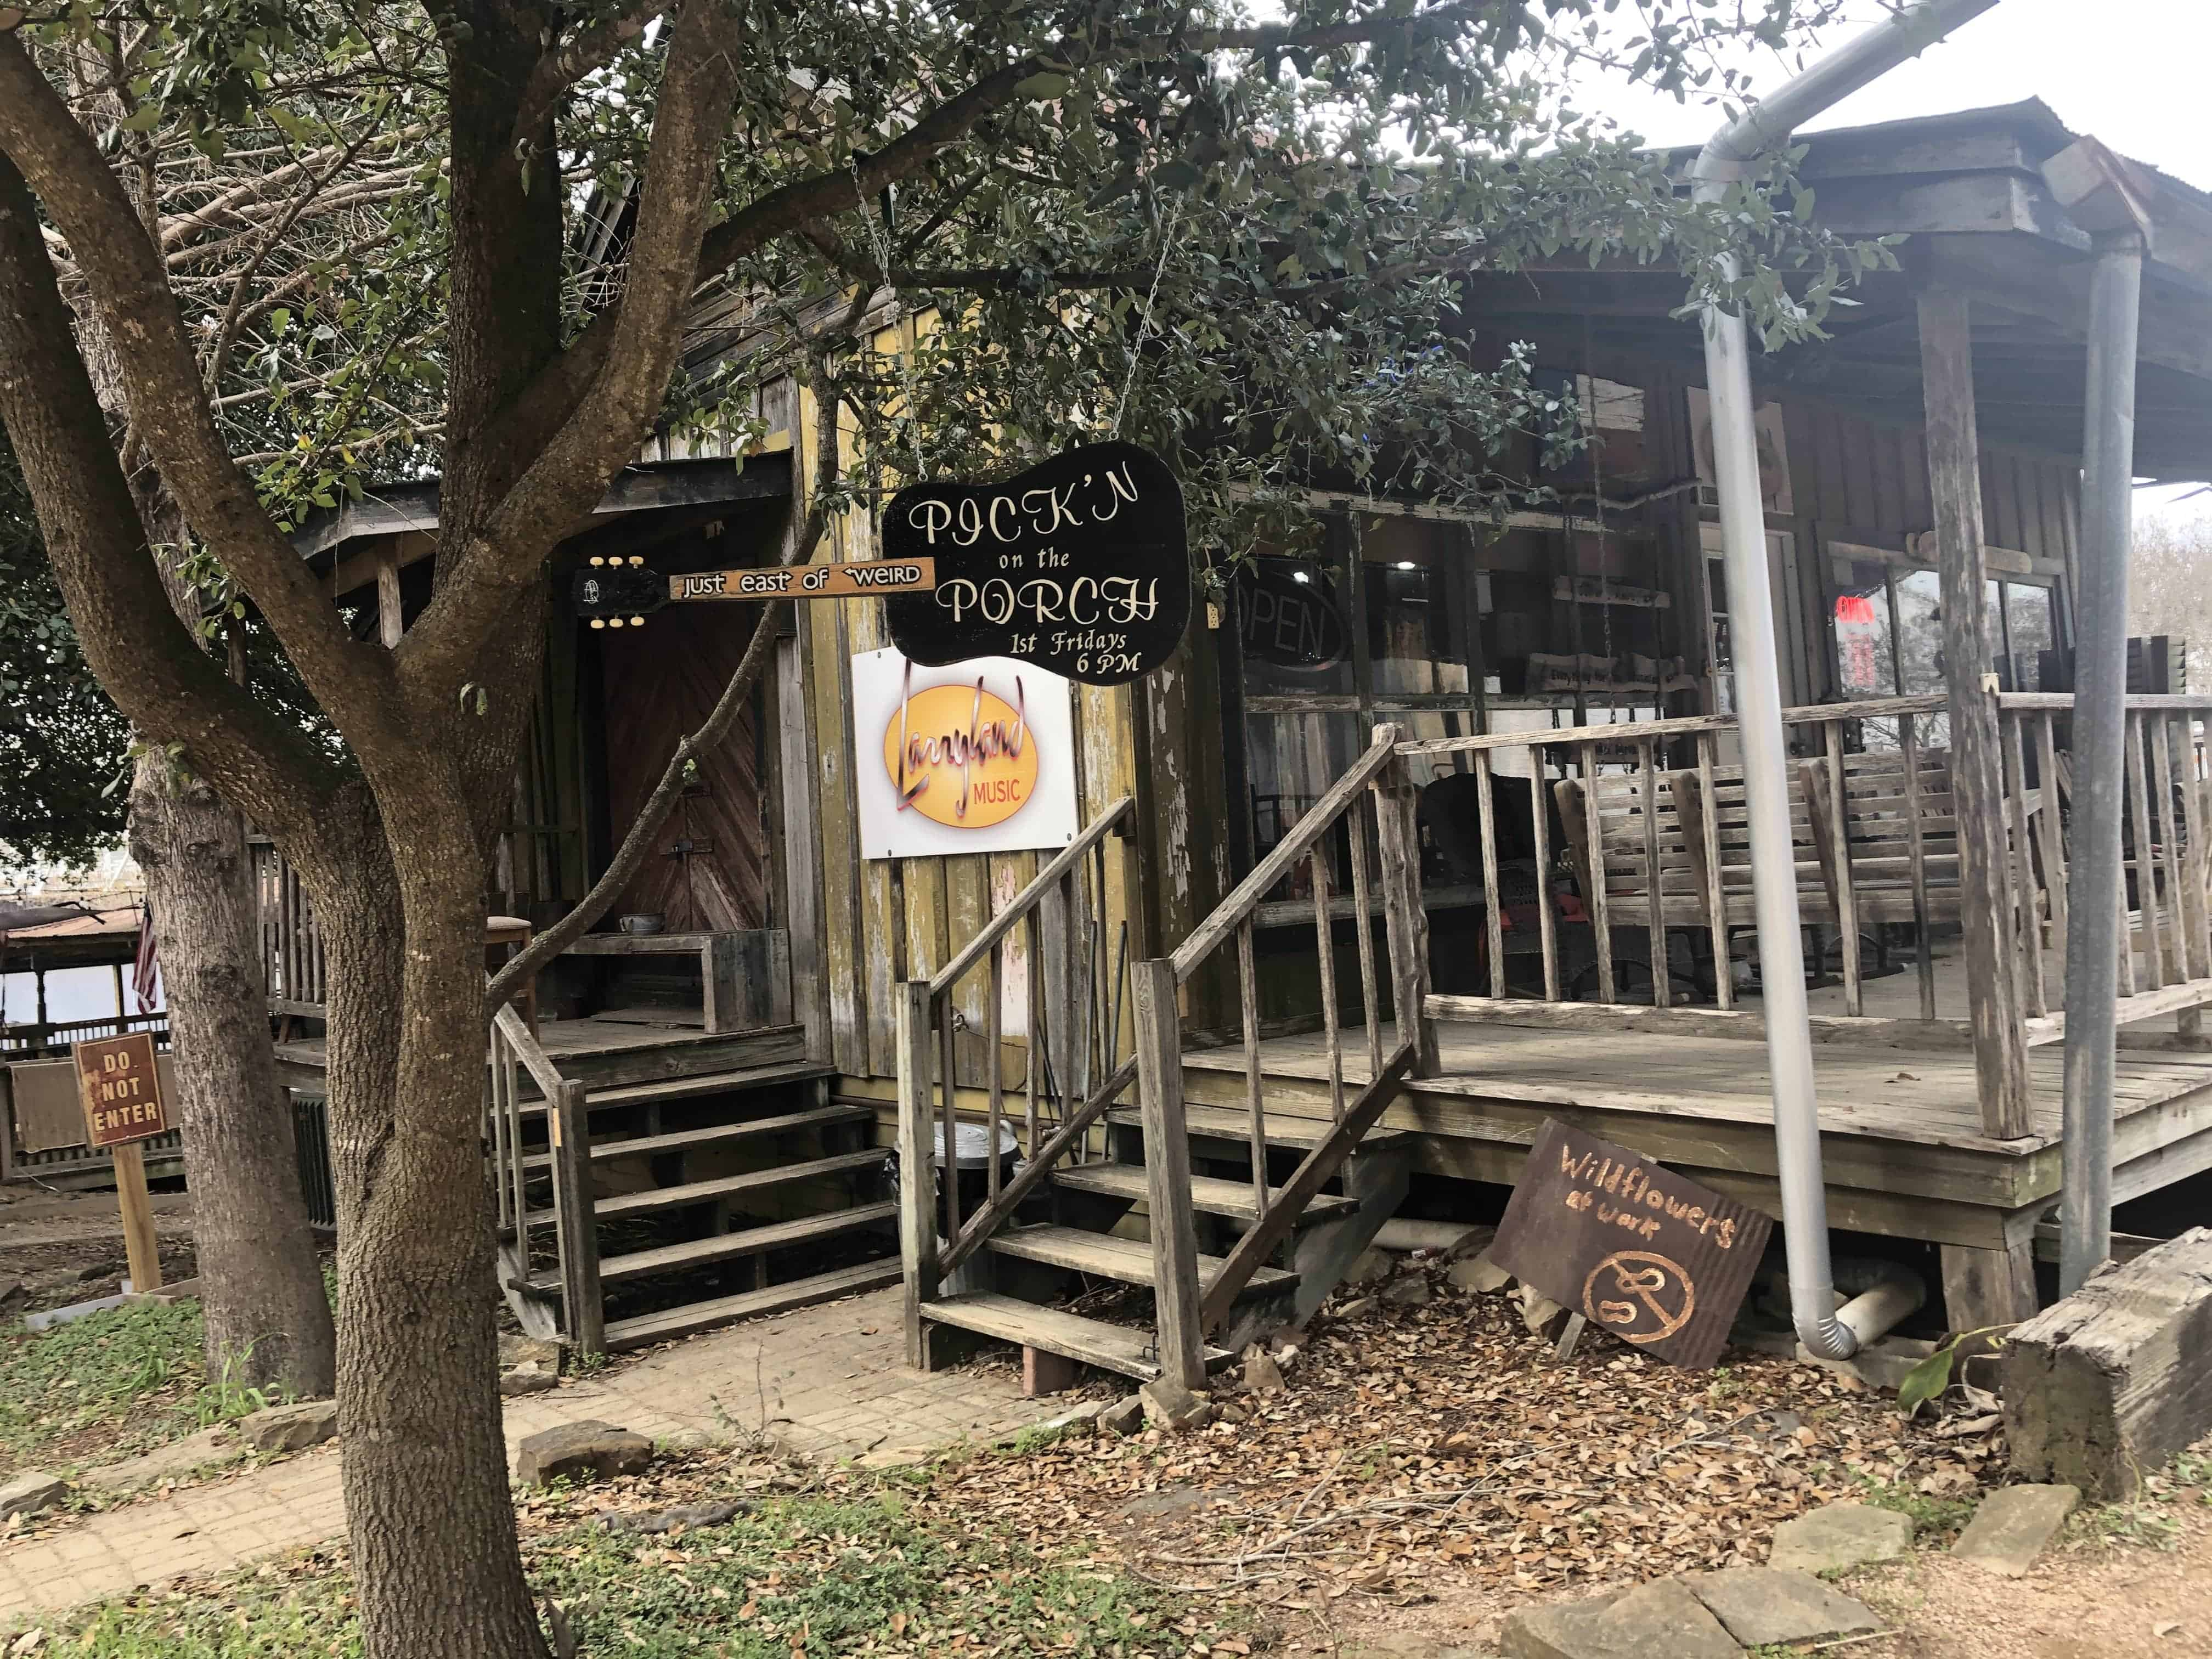 Experience the way how Texans enjoy life with the monthly gathering in The Yard, where locals gather around and play music, sing and dance, just enjoying each others' companies.